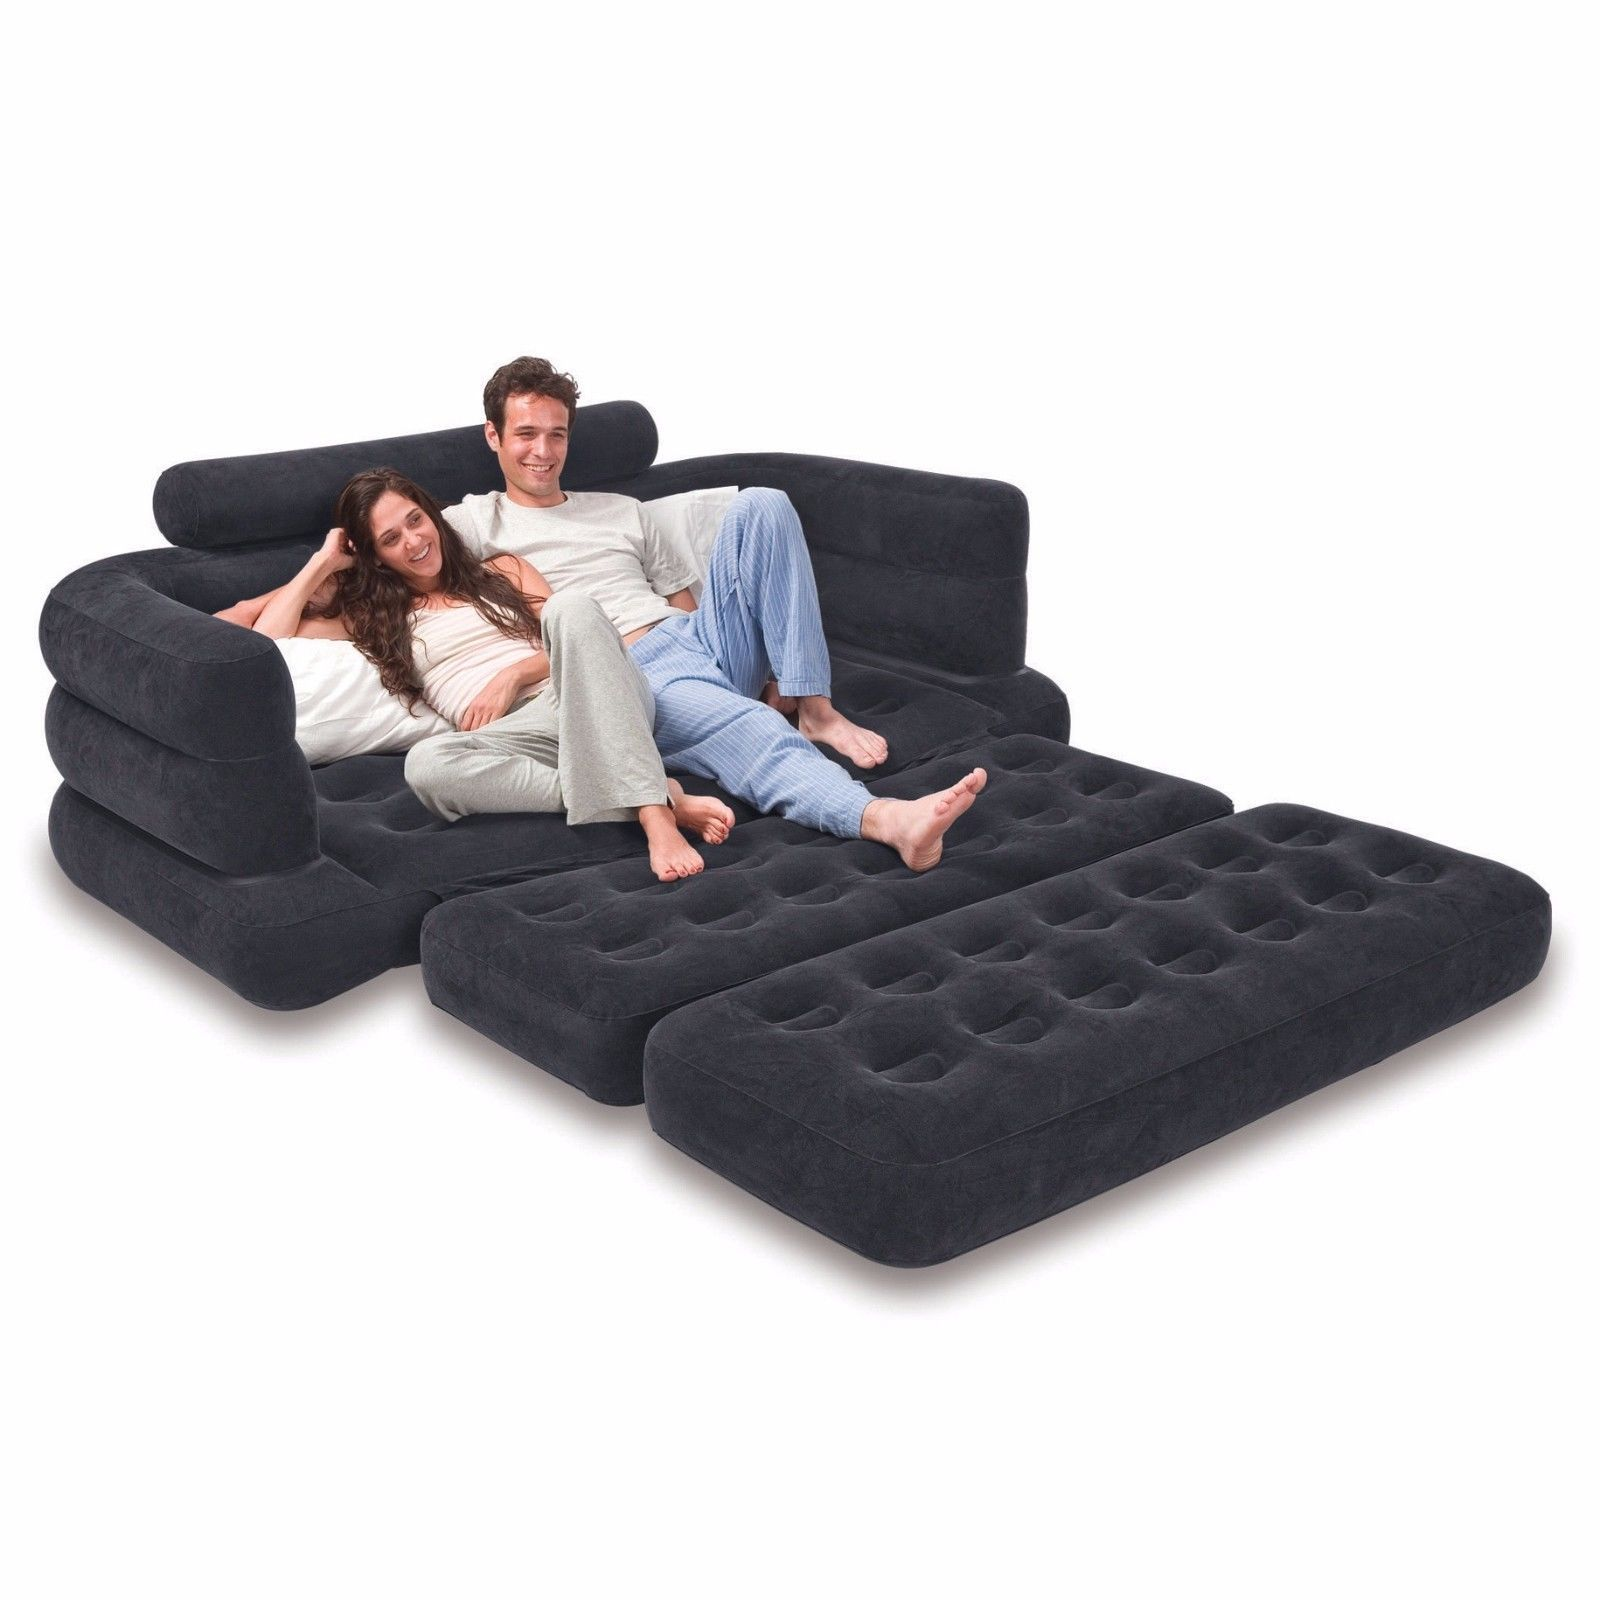 Inflatable Couch Sofa Pull Out Bed Mattress Camping Travel Beach Guest Airbed Inflatable